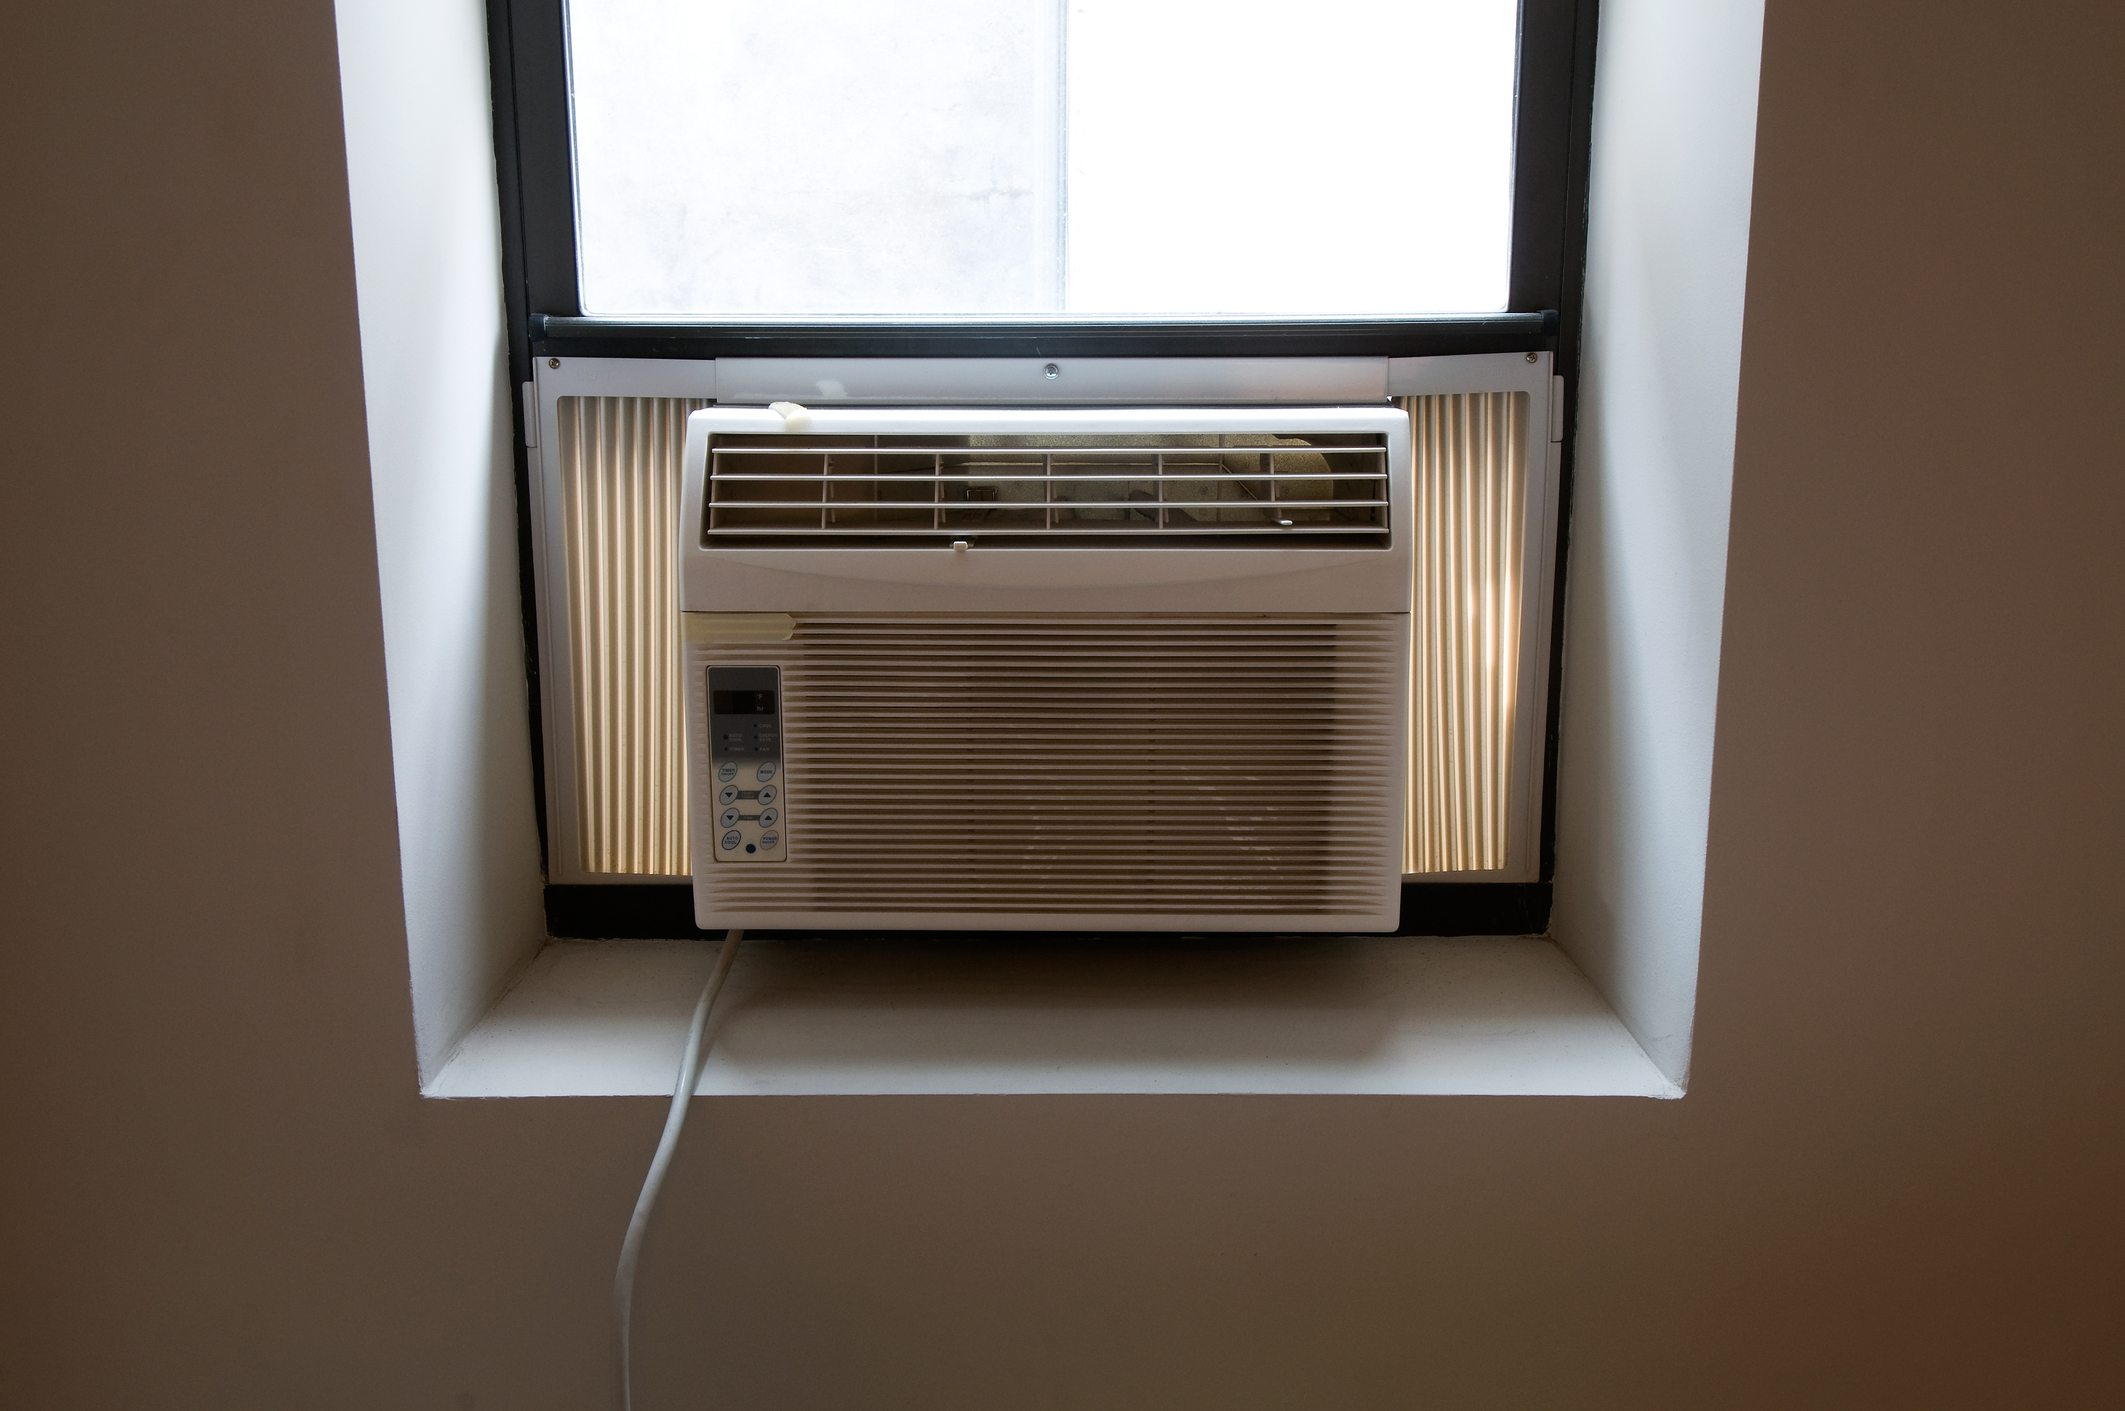 Air conditioning unit in window